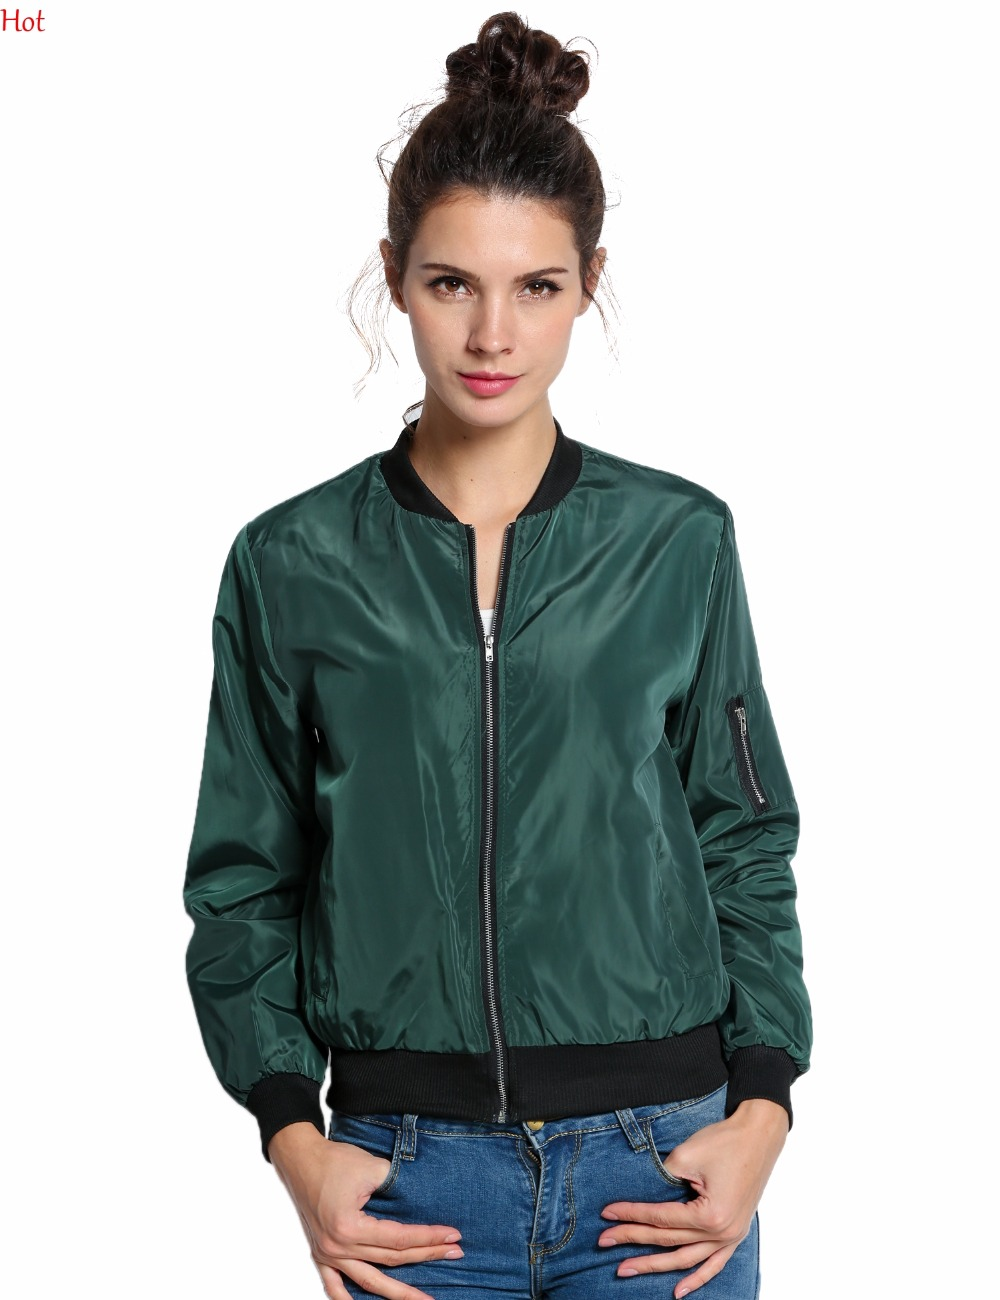 60862be722 2018 Hot Spring Army Green Bomber Jacket Women Zipper Casual Jacket Ladies  Coat Clothes Plus Size Bomber Female Coat SV027239